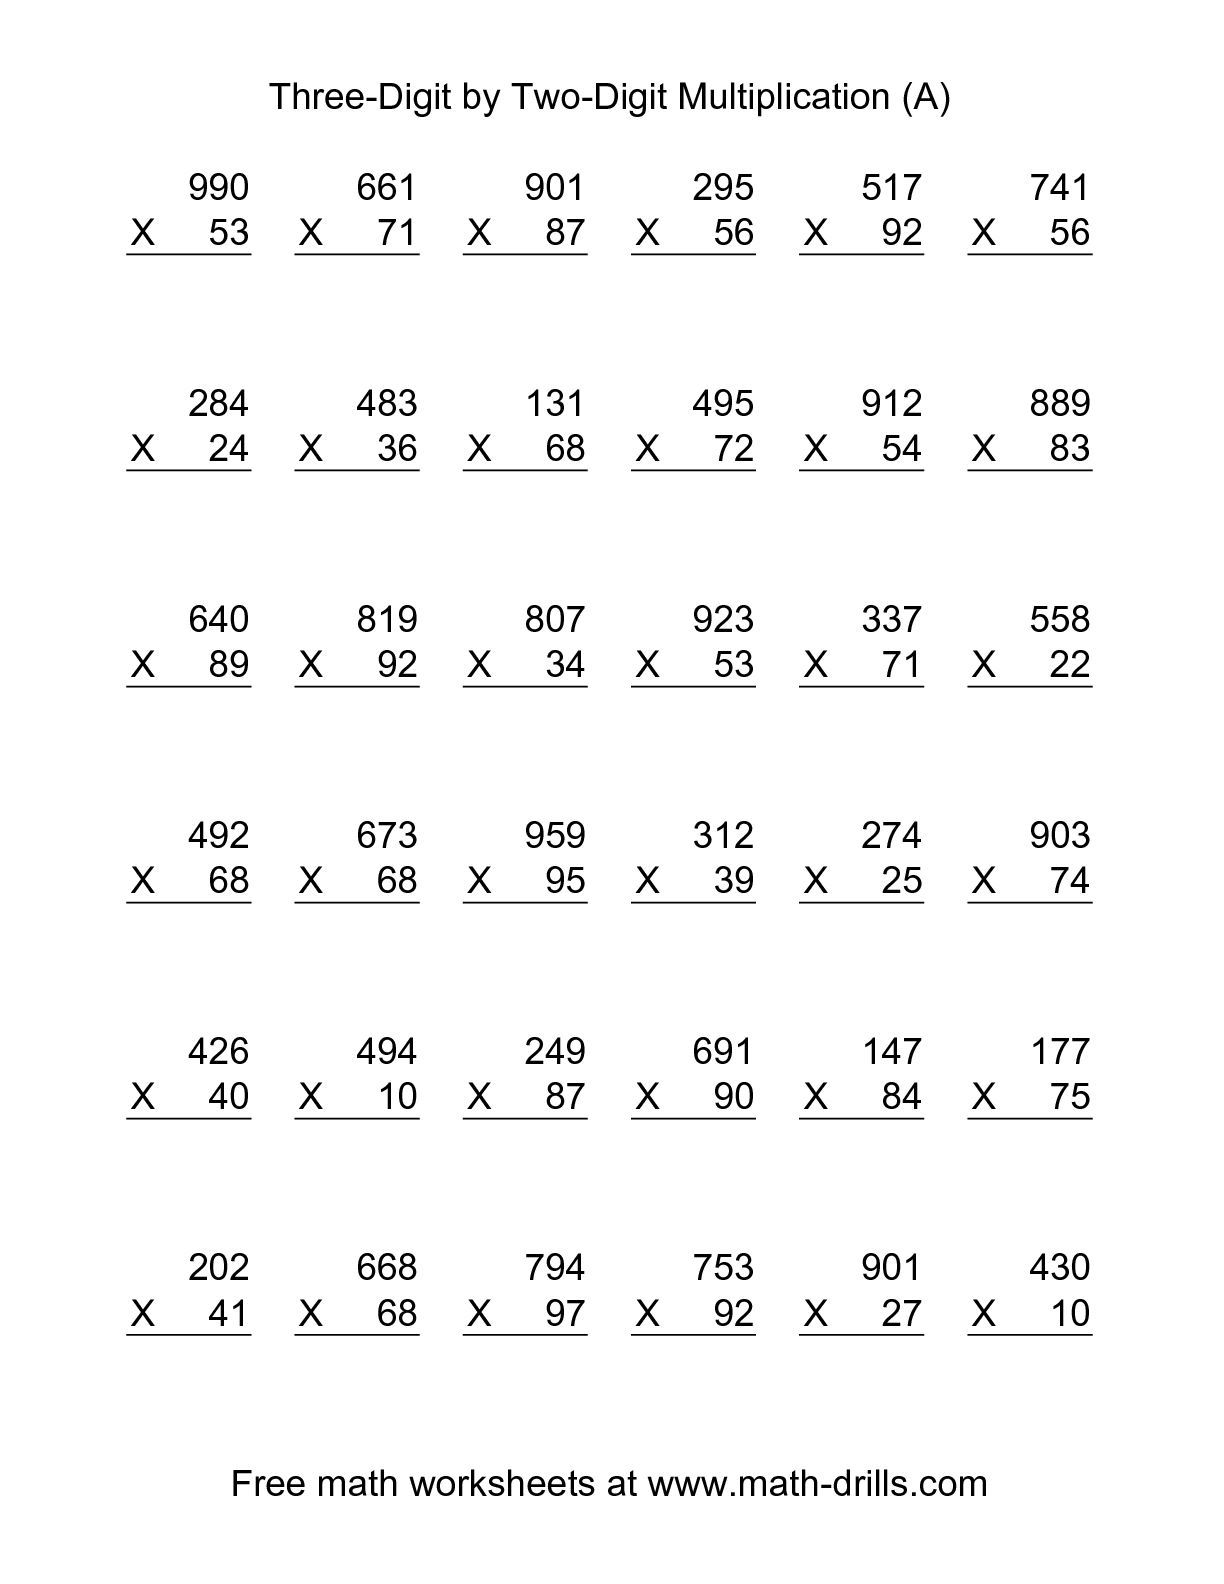 Mult030236 001 Pin Jpg 1 224 1 584 Pixels Multiplication Worksheets Math Fact Worksheets Math Multiplication Worksheets